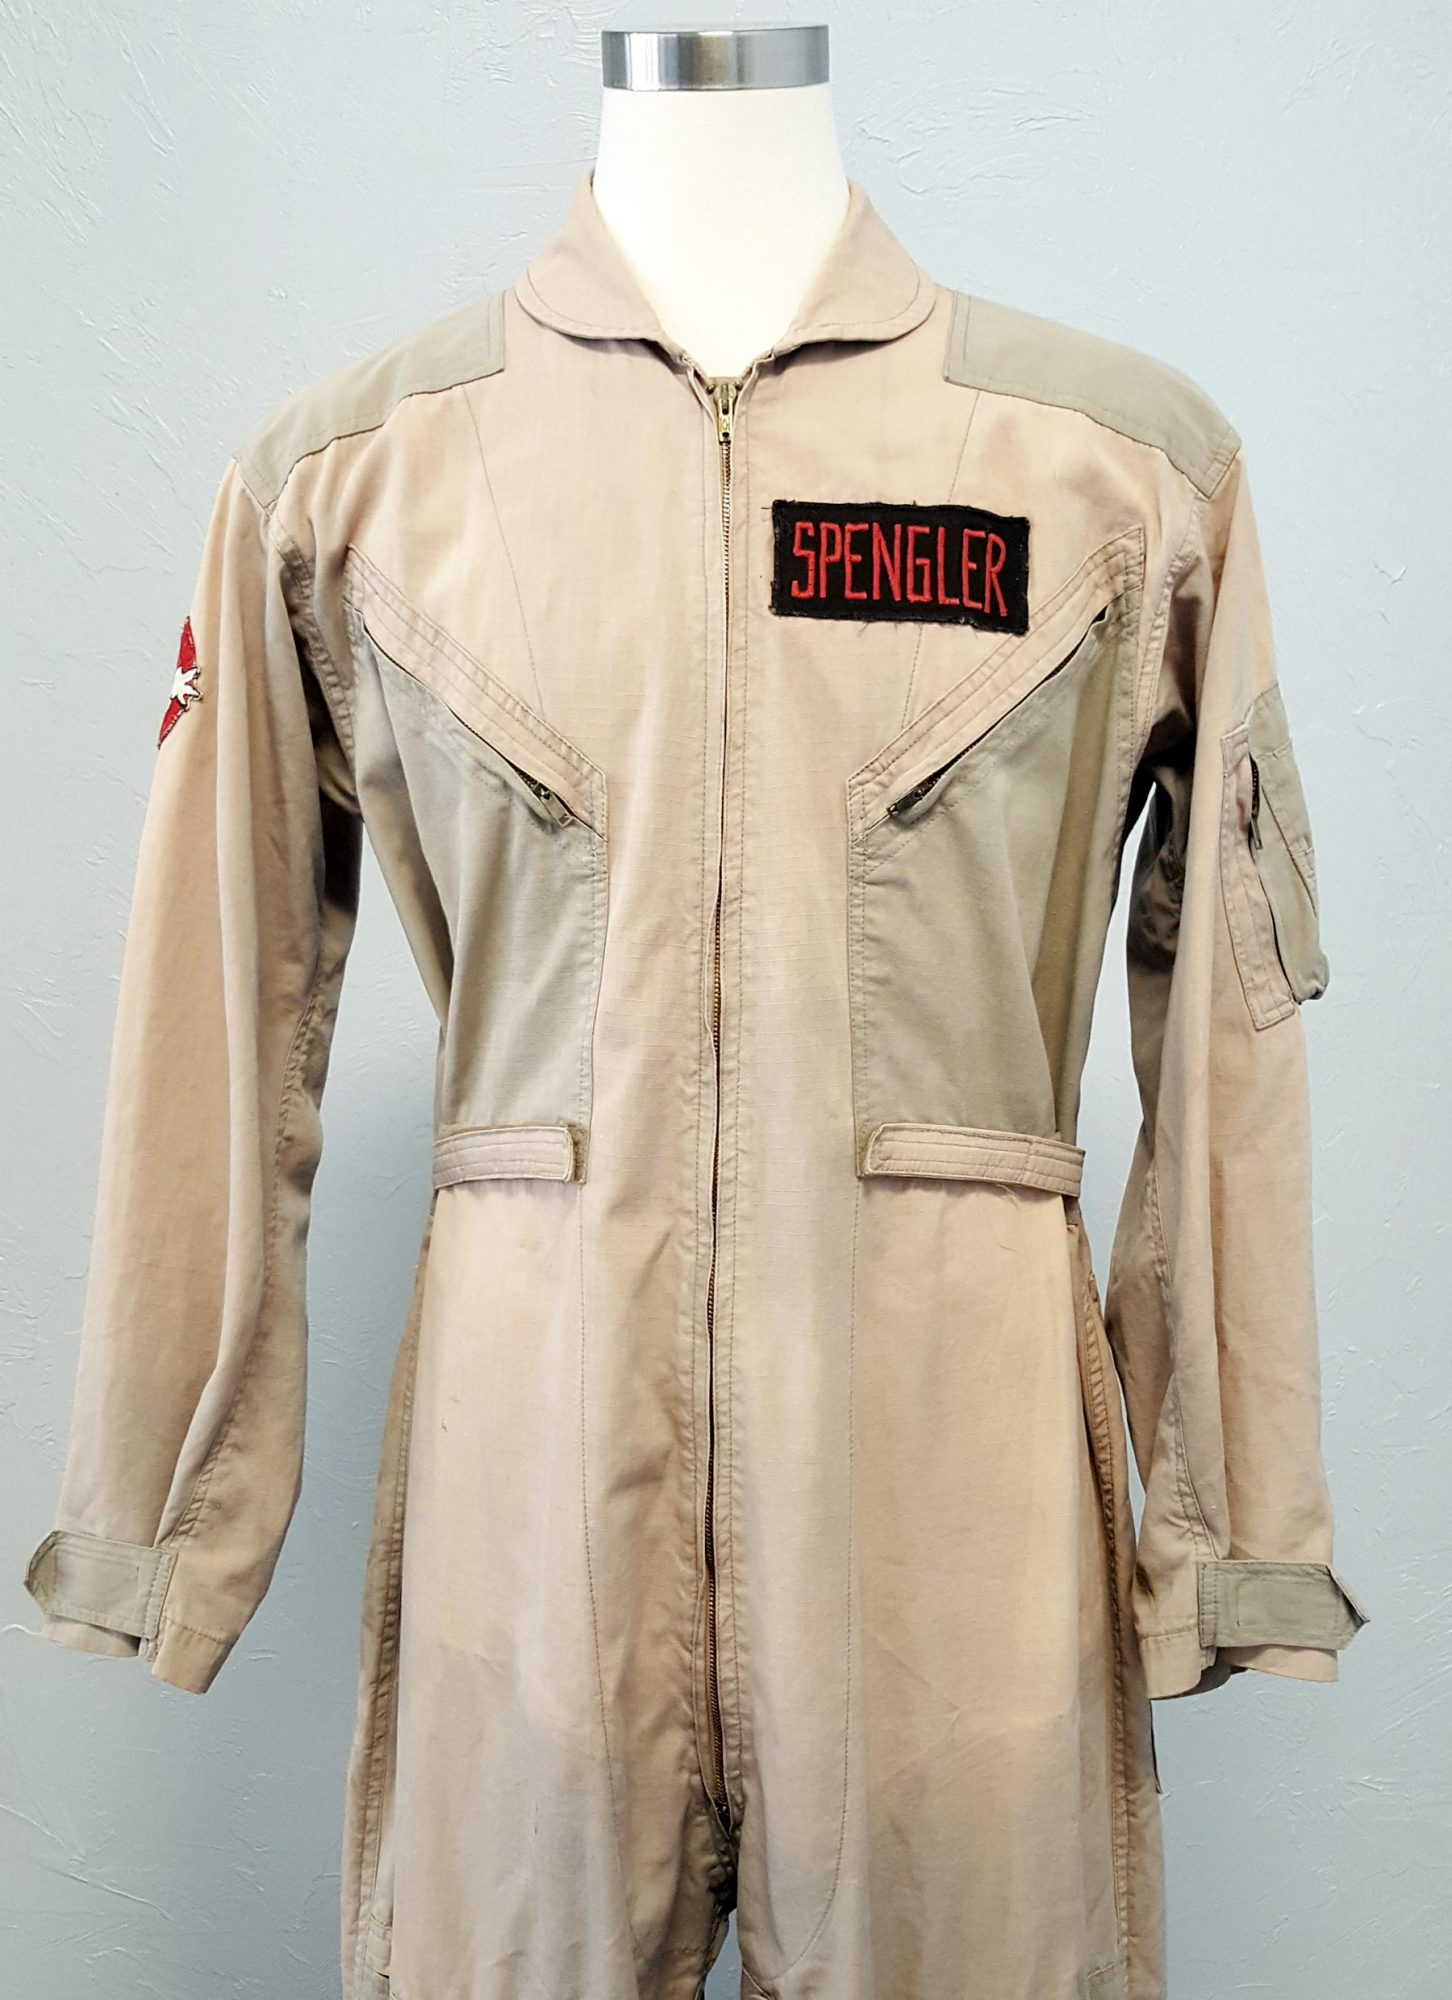 Harold-Ramis'-Ghostbusters-Outfit